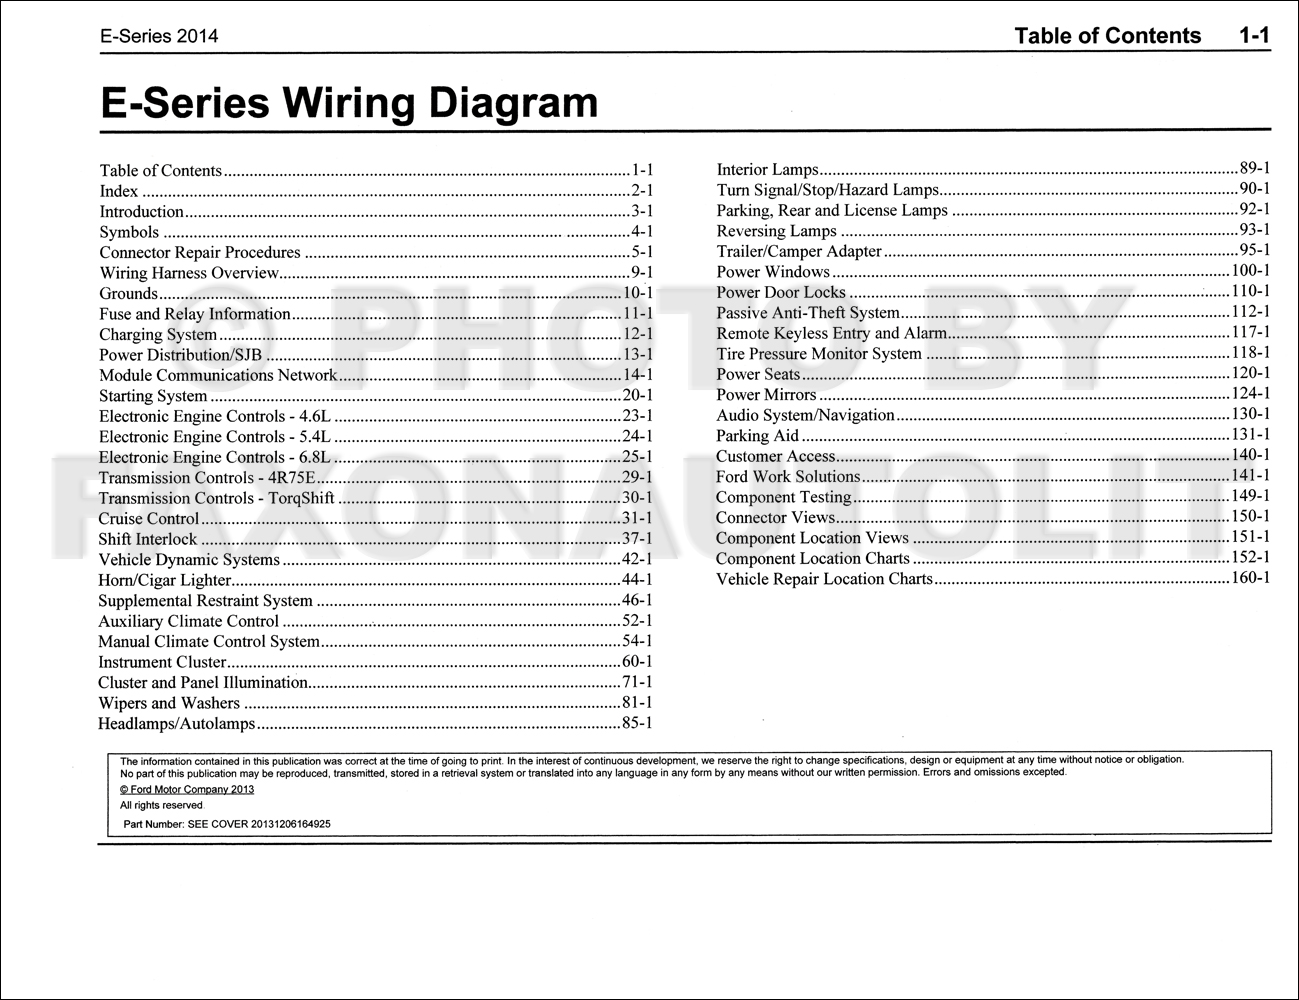 2017 Ford E 450 Wiring Diagram Start Building A F 2014 Econoline Manual Original Van E150 E250 Rh Faxonautoliterature Com 150 Diagrams Pcm